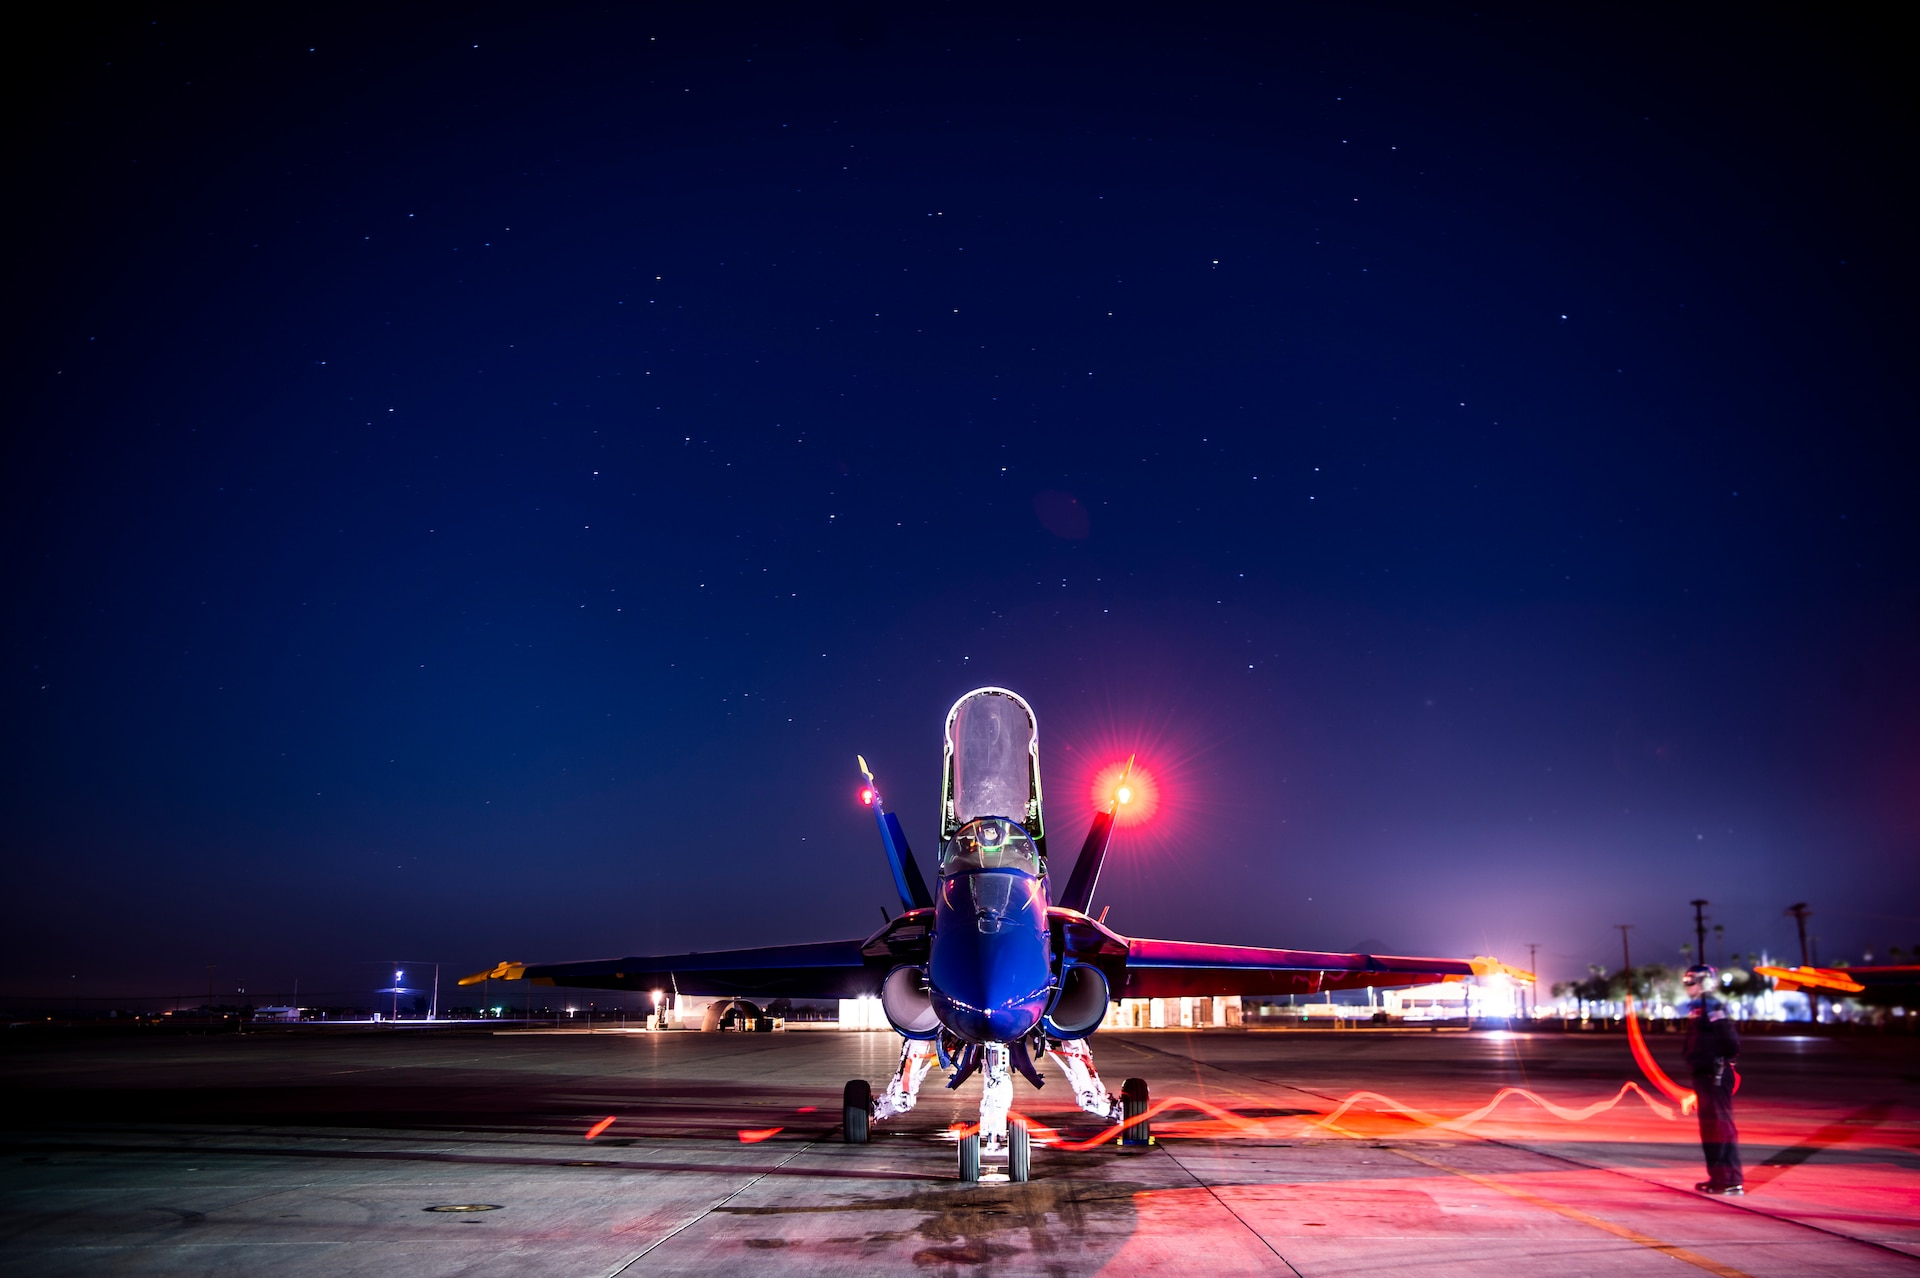 Members of the U.S. Navy Flight Demonstration Squadron, the Blue Angels, perform morning turn-up operations at Naval Air Facility El Centro, California.